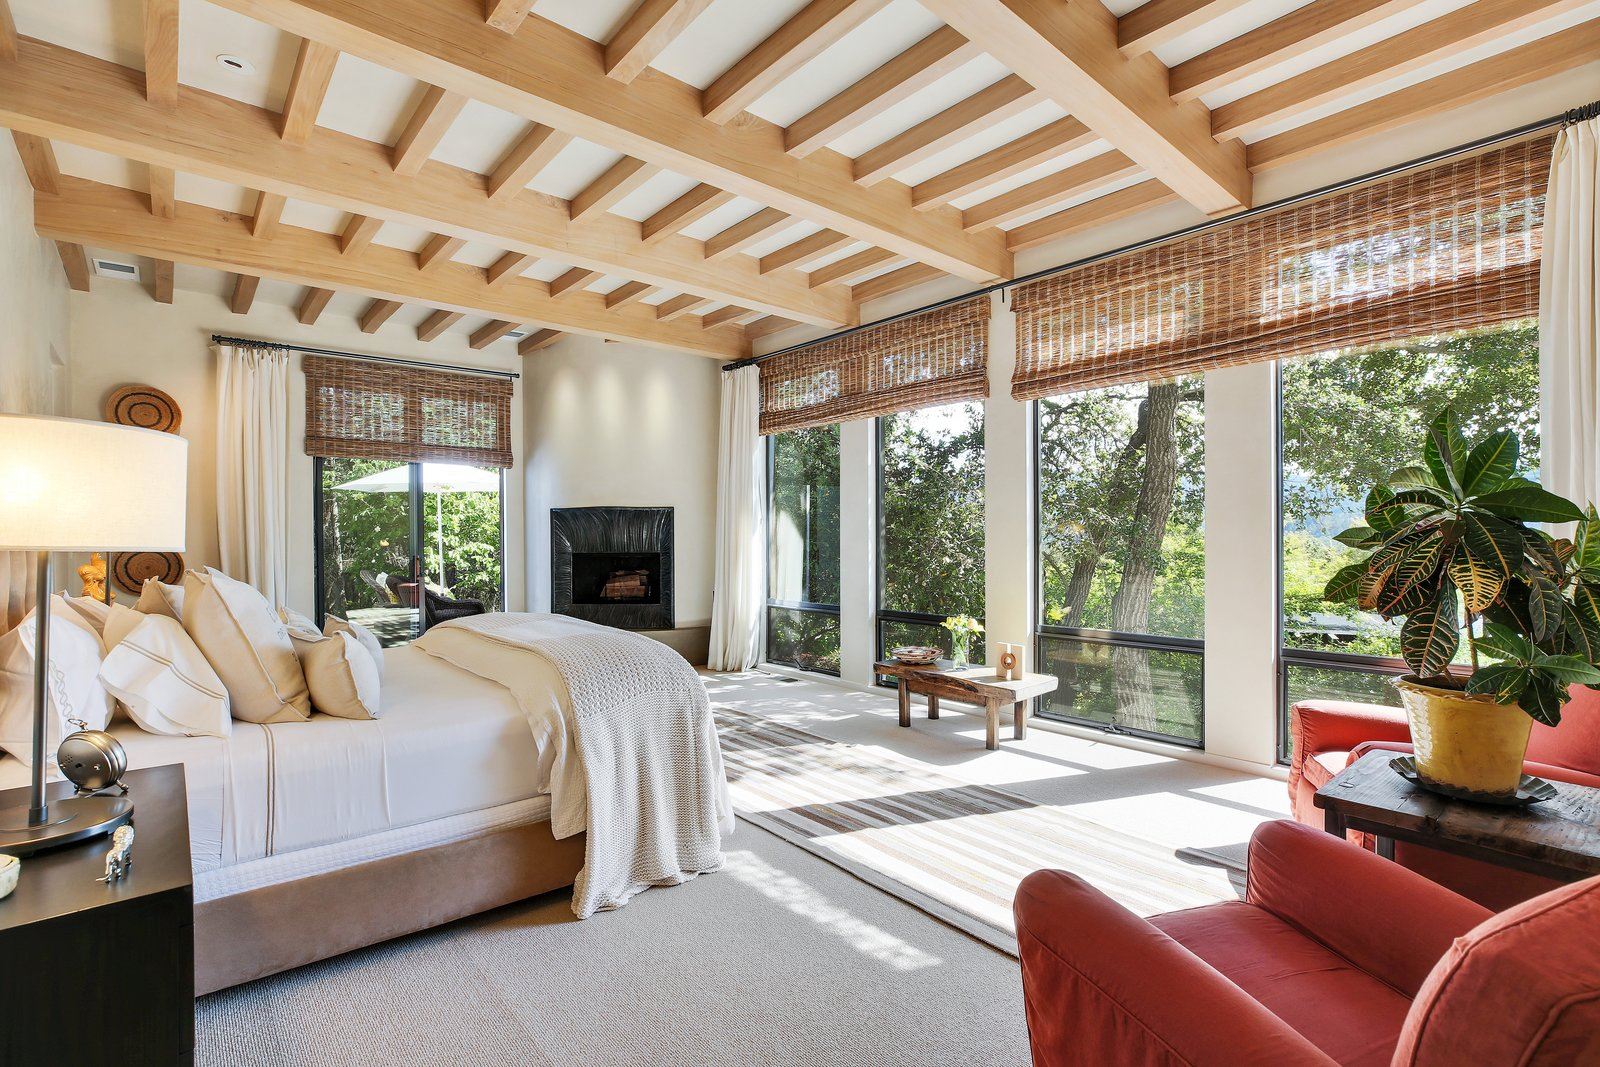 Robert Redford Is Selling His Napa Valley Retreat For $7.5M